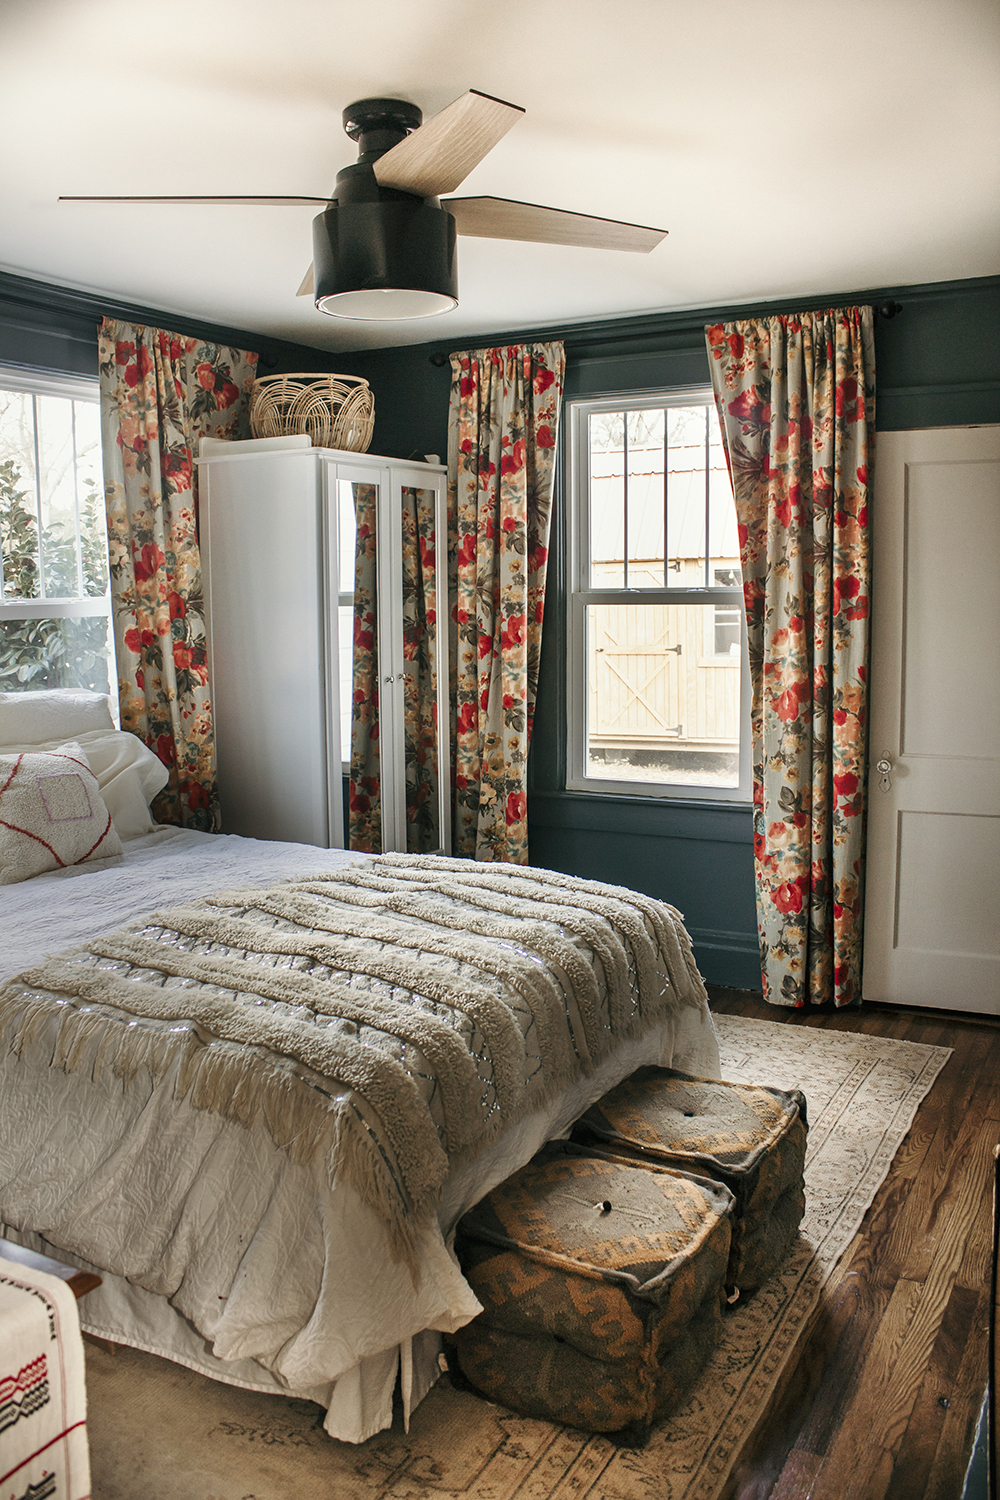 A Look at Our Master Bedroom - thewhitebuffalostylingco.com on Master Bedroom Curtains  id=69736